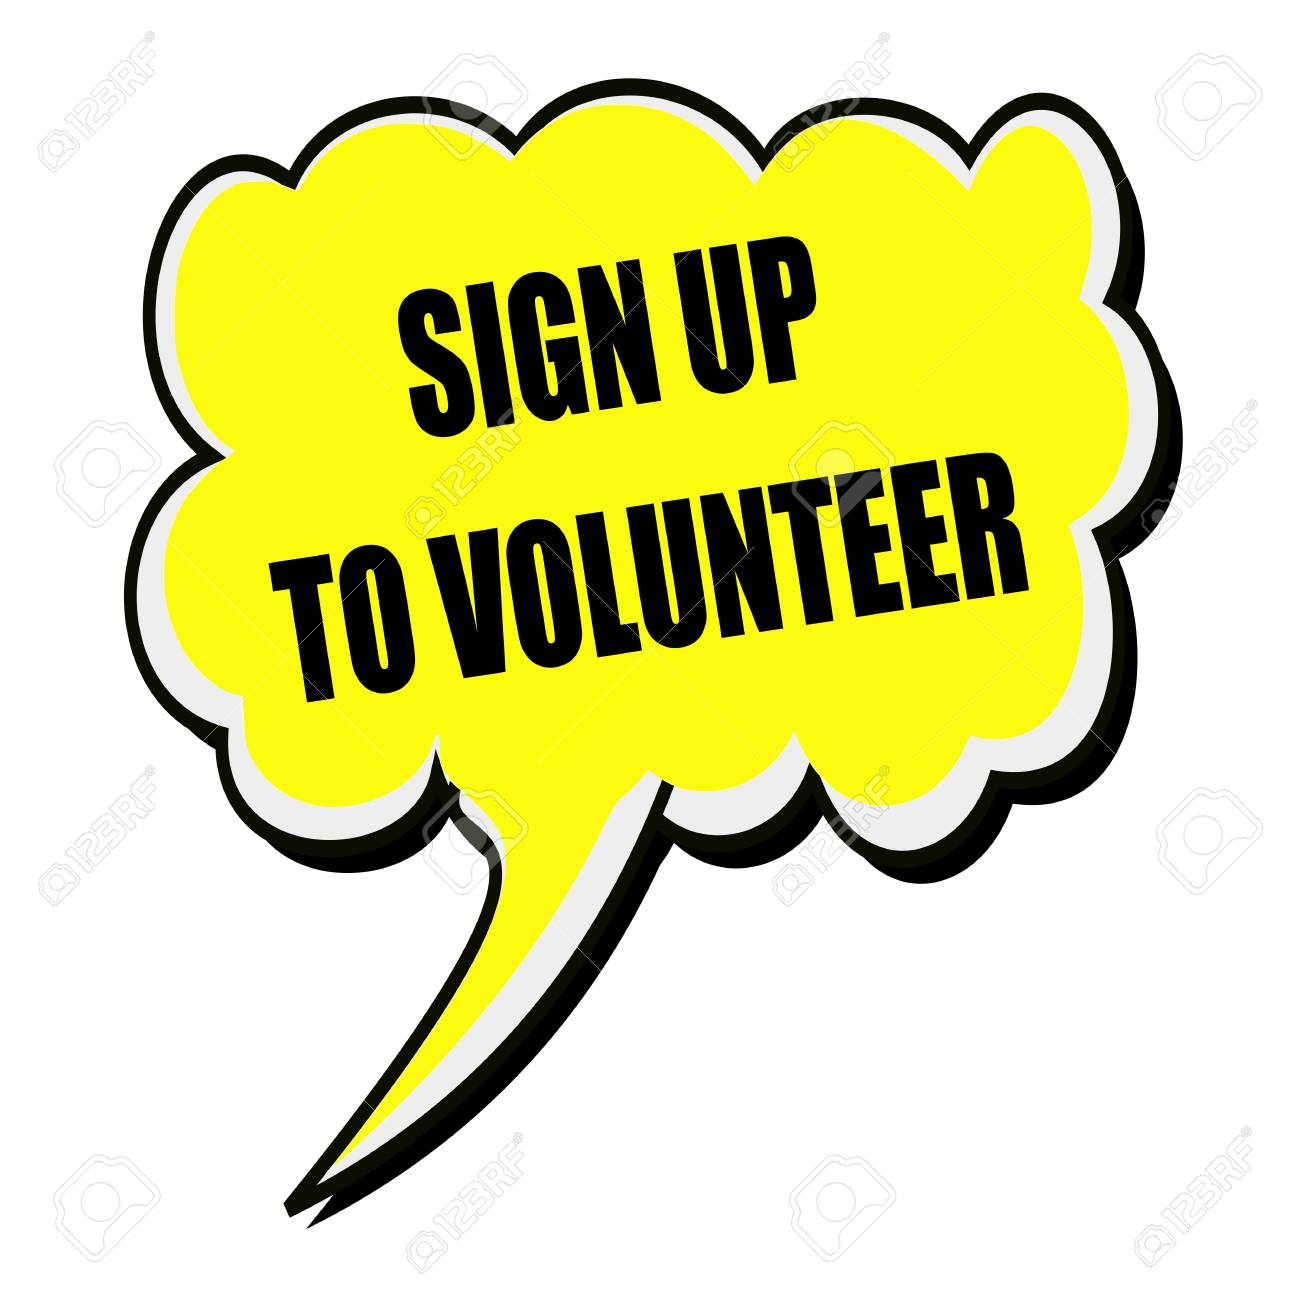 sign up to volunteer black stamp text on yellow speech bubble stock